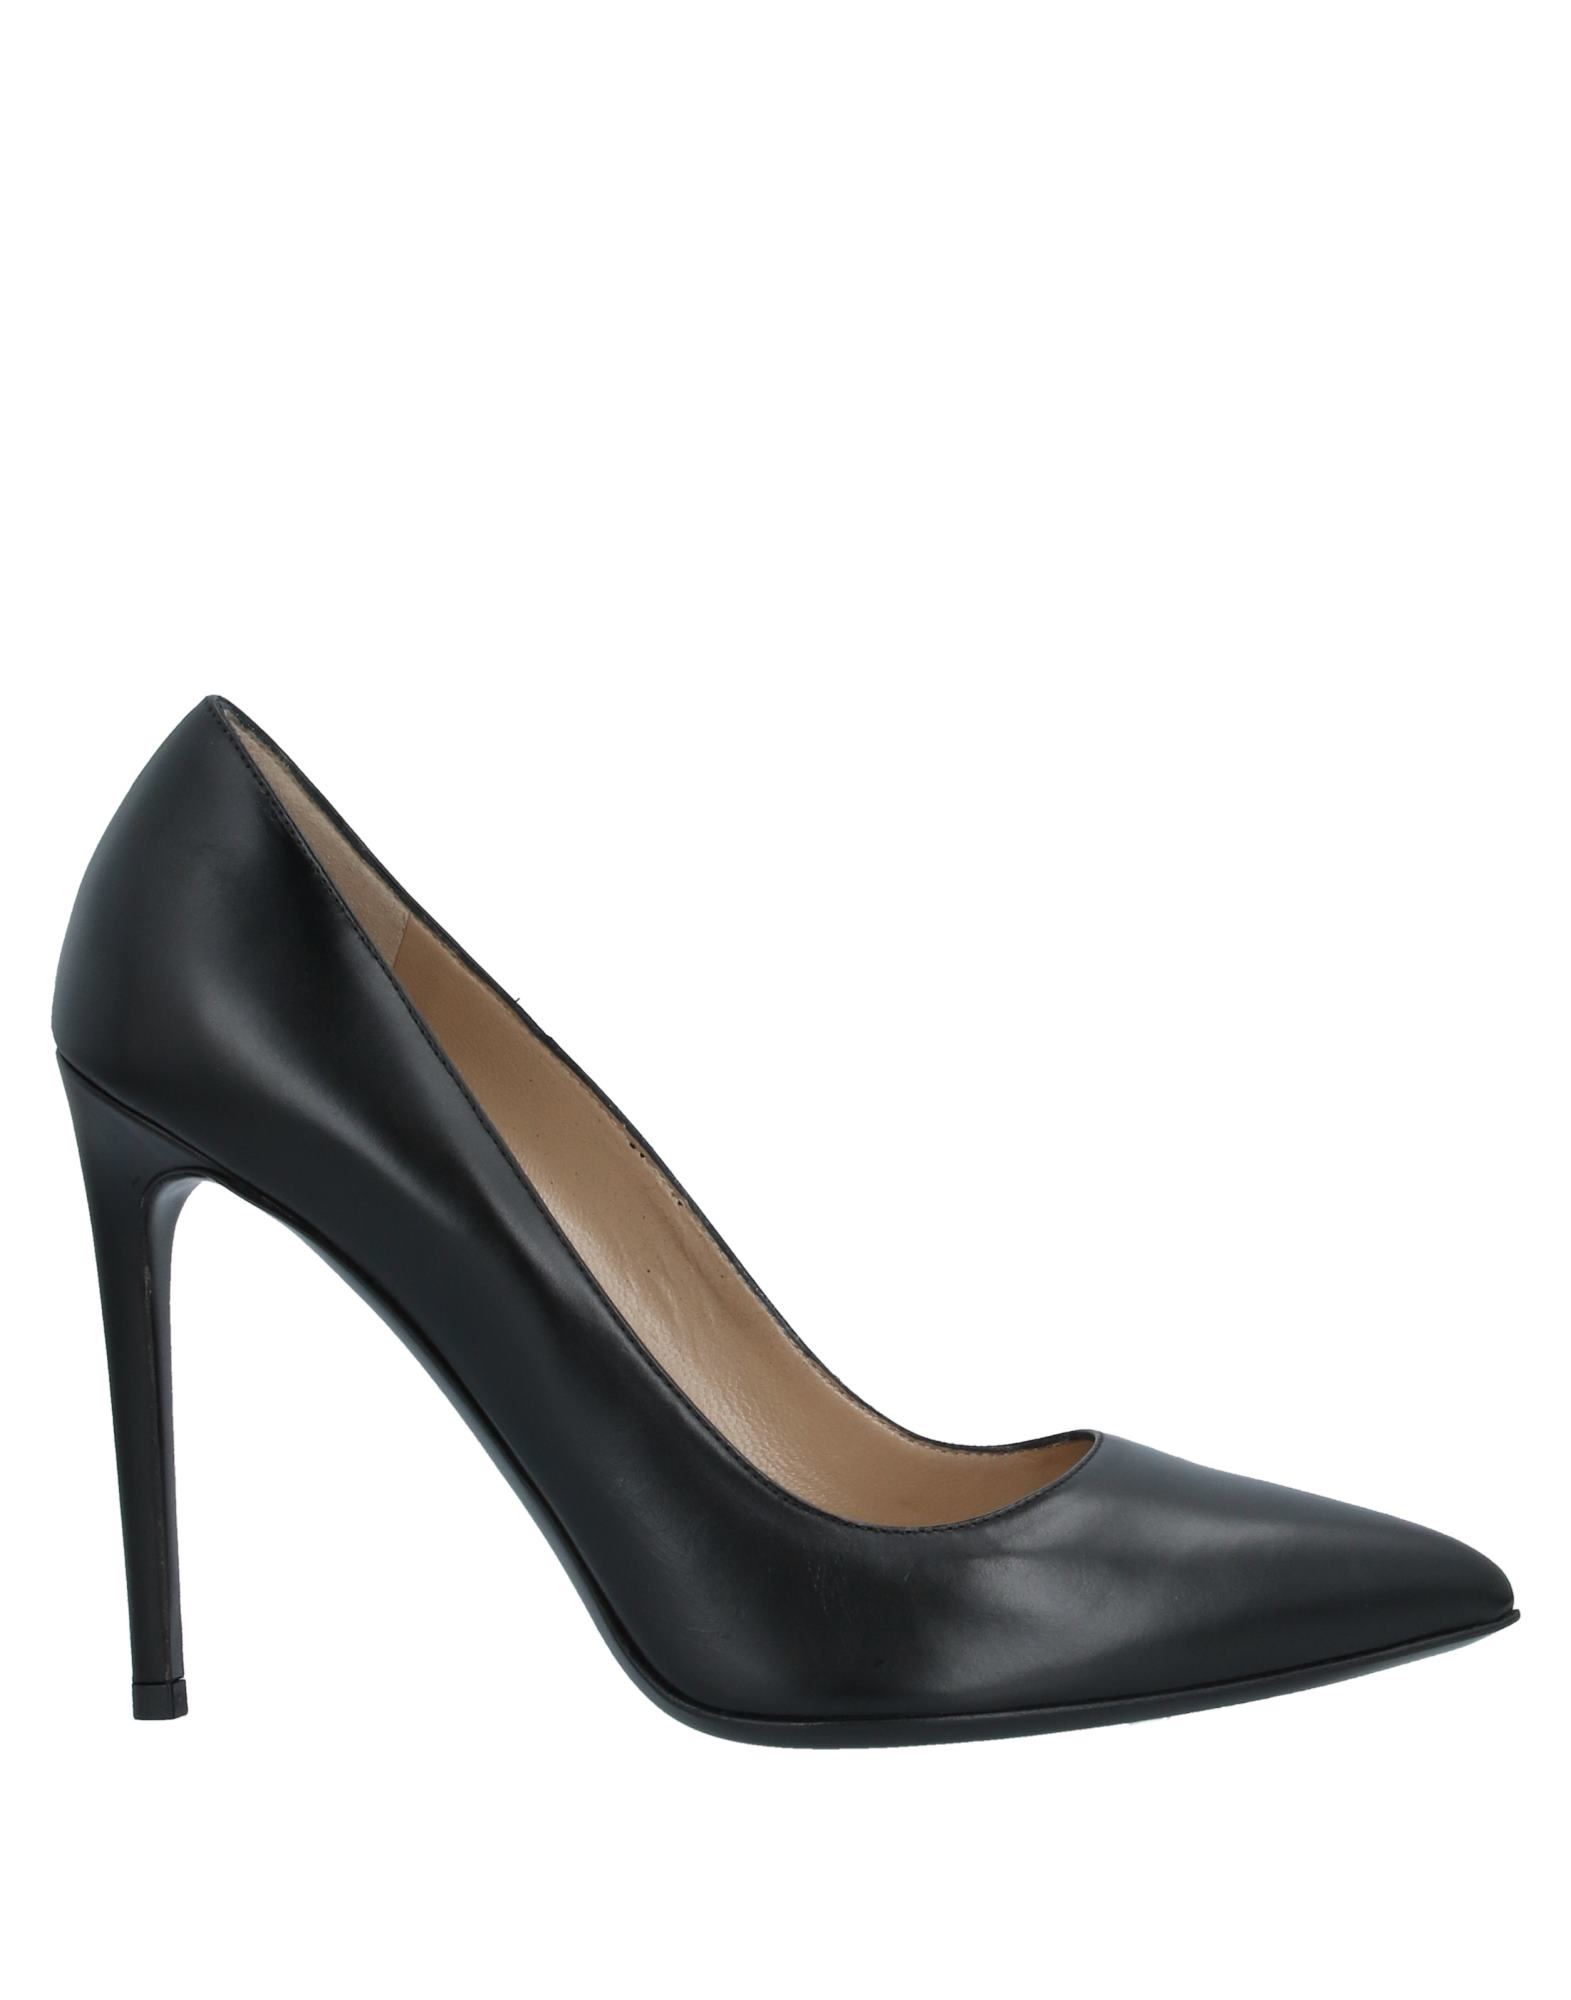 DONDUP Pumps. no appliqués, solid color, narrow toeline, spike heel, covered heel, leather lining, leather sole, contains non-textile parts of animal origin, large sized. Soft Leather